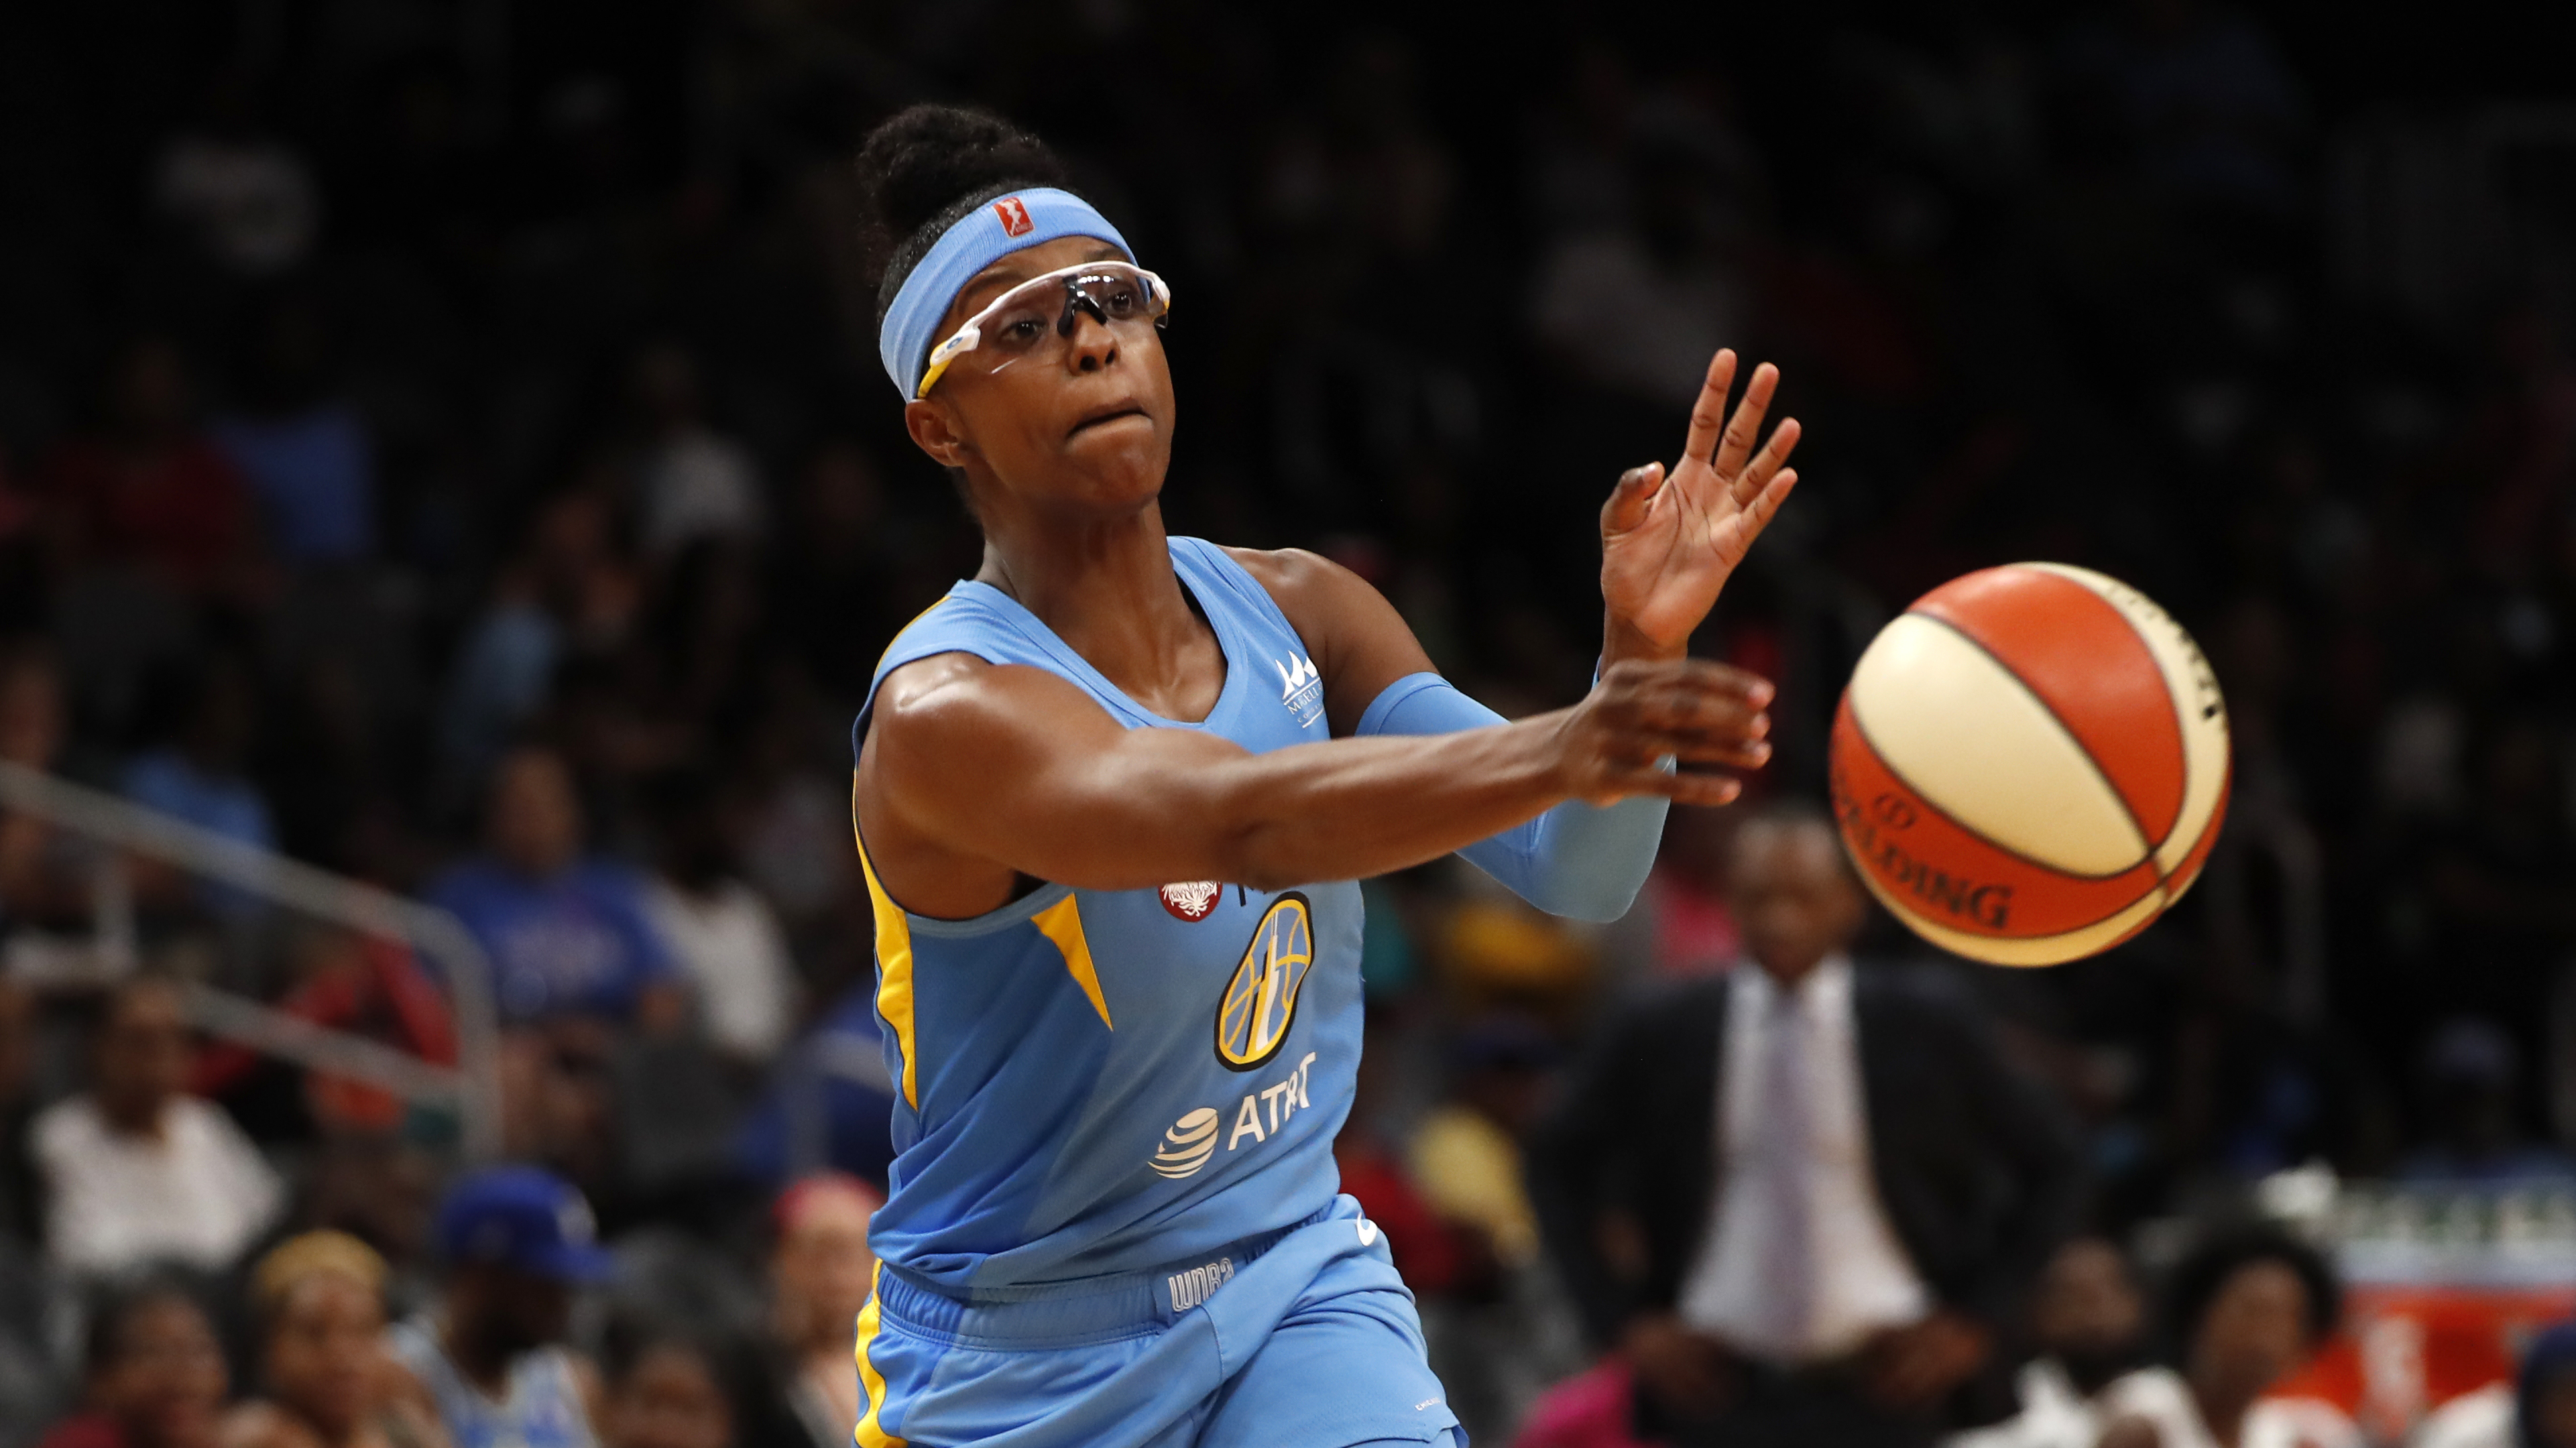 Chicago Sky guard Diamond DeShields passes the ball in the second half of a WNBA basketball game against the Atlanta Dream Tuesday, Aug. 20, 2019, in Atlanta.